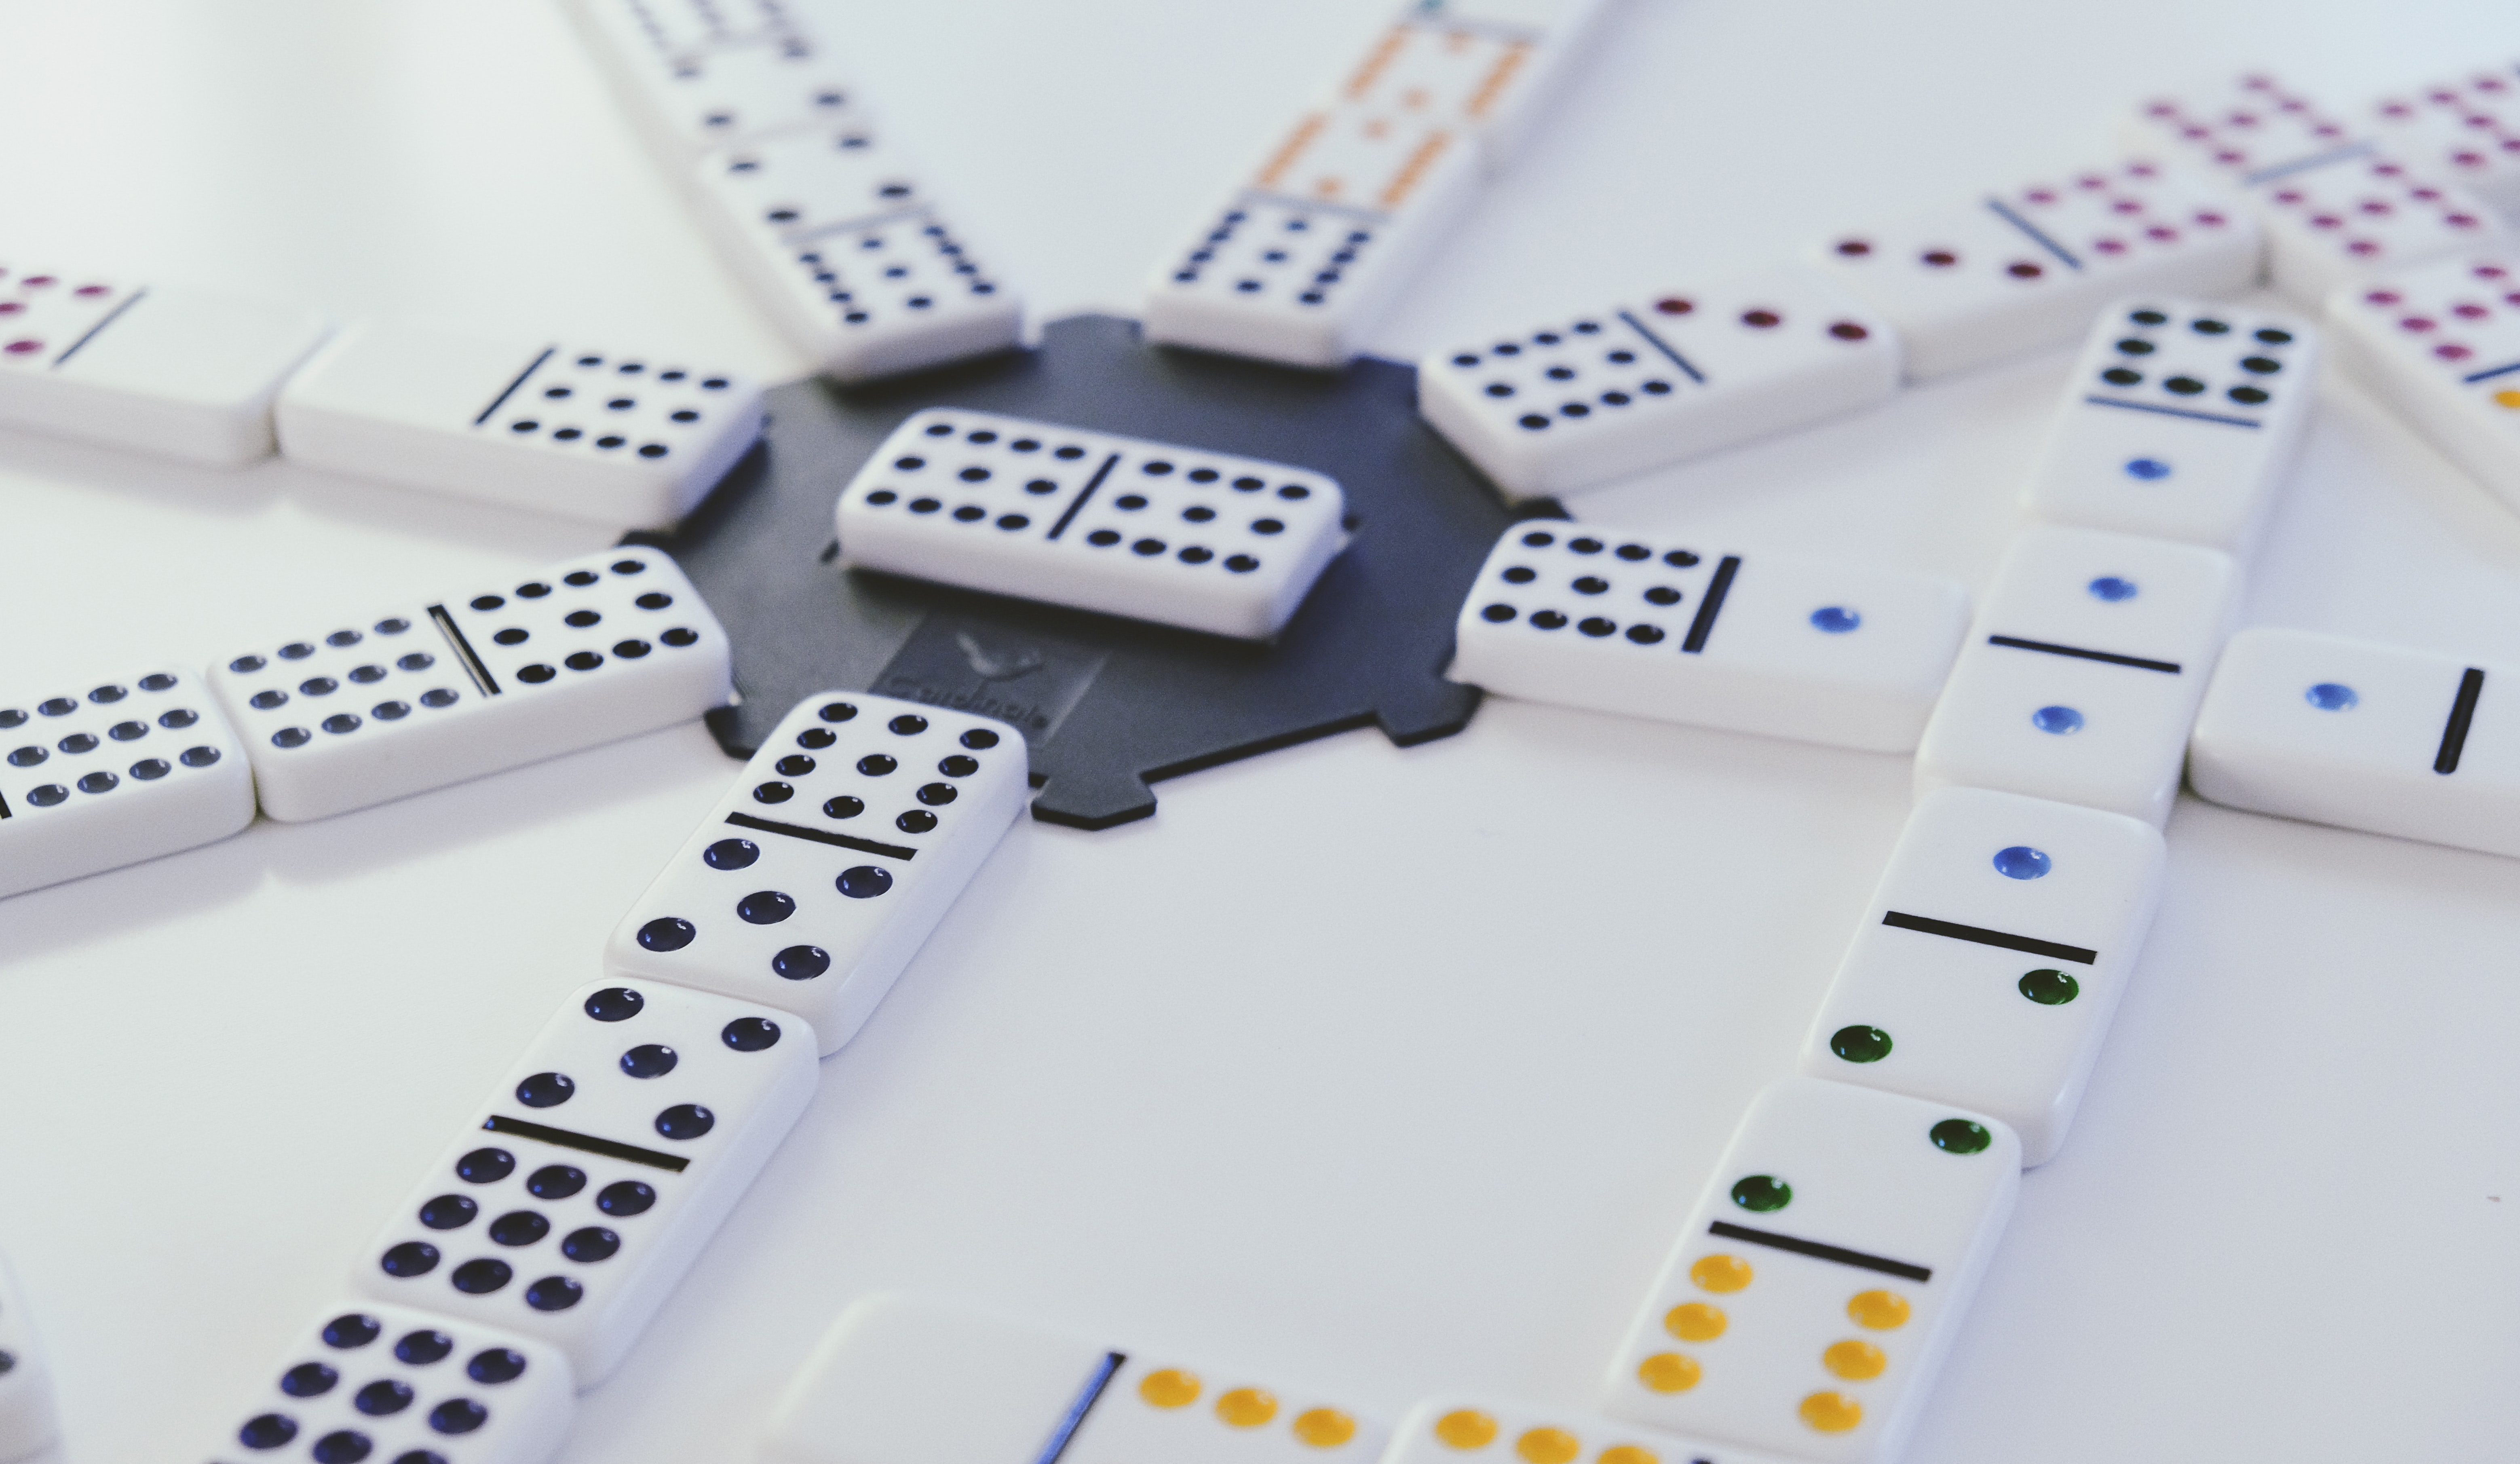 Arranged dominos lying flat, converging around a singular domino